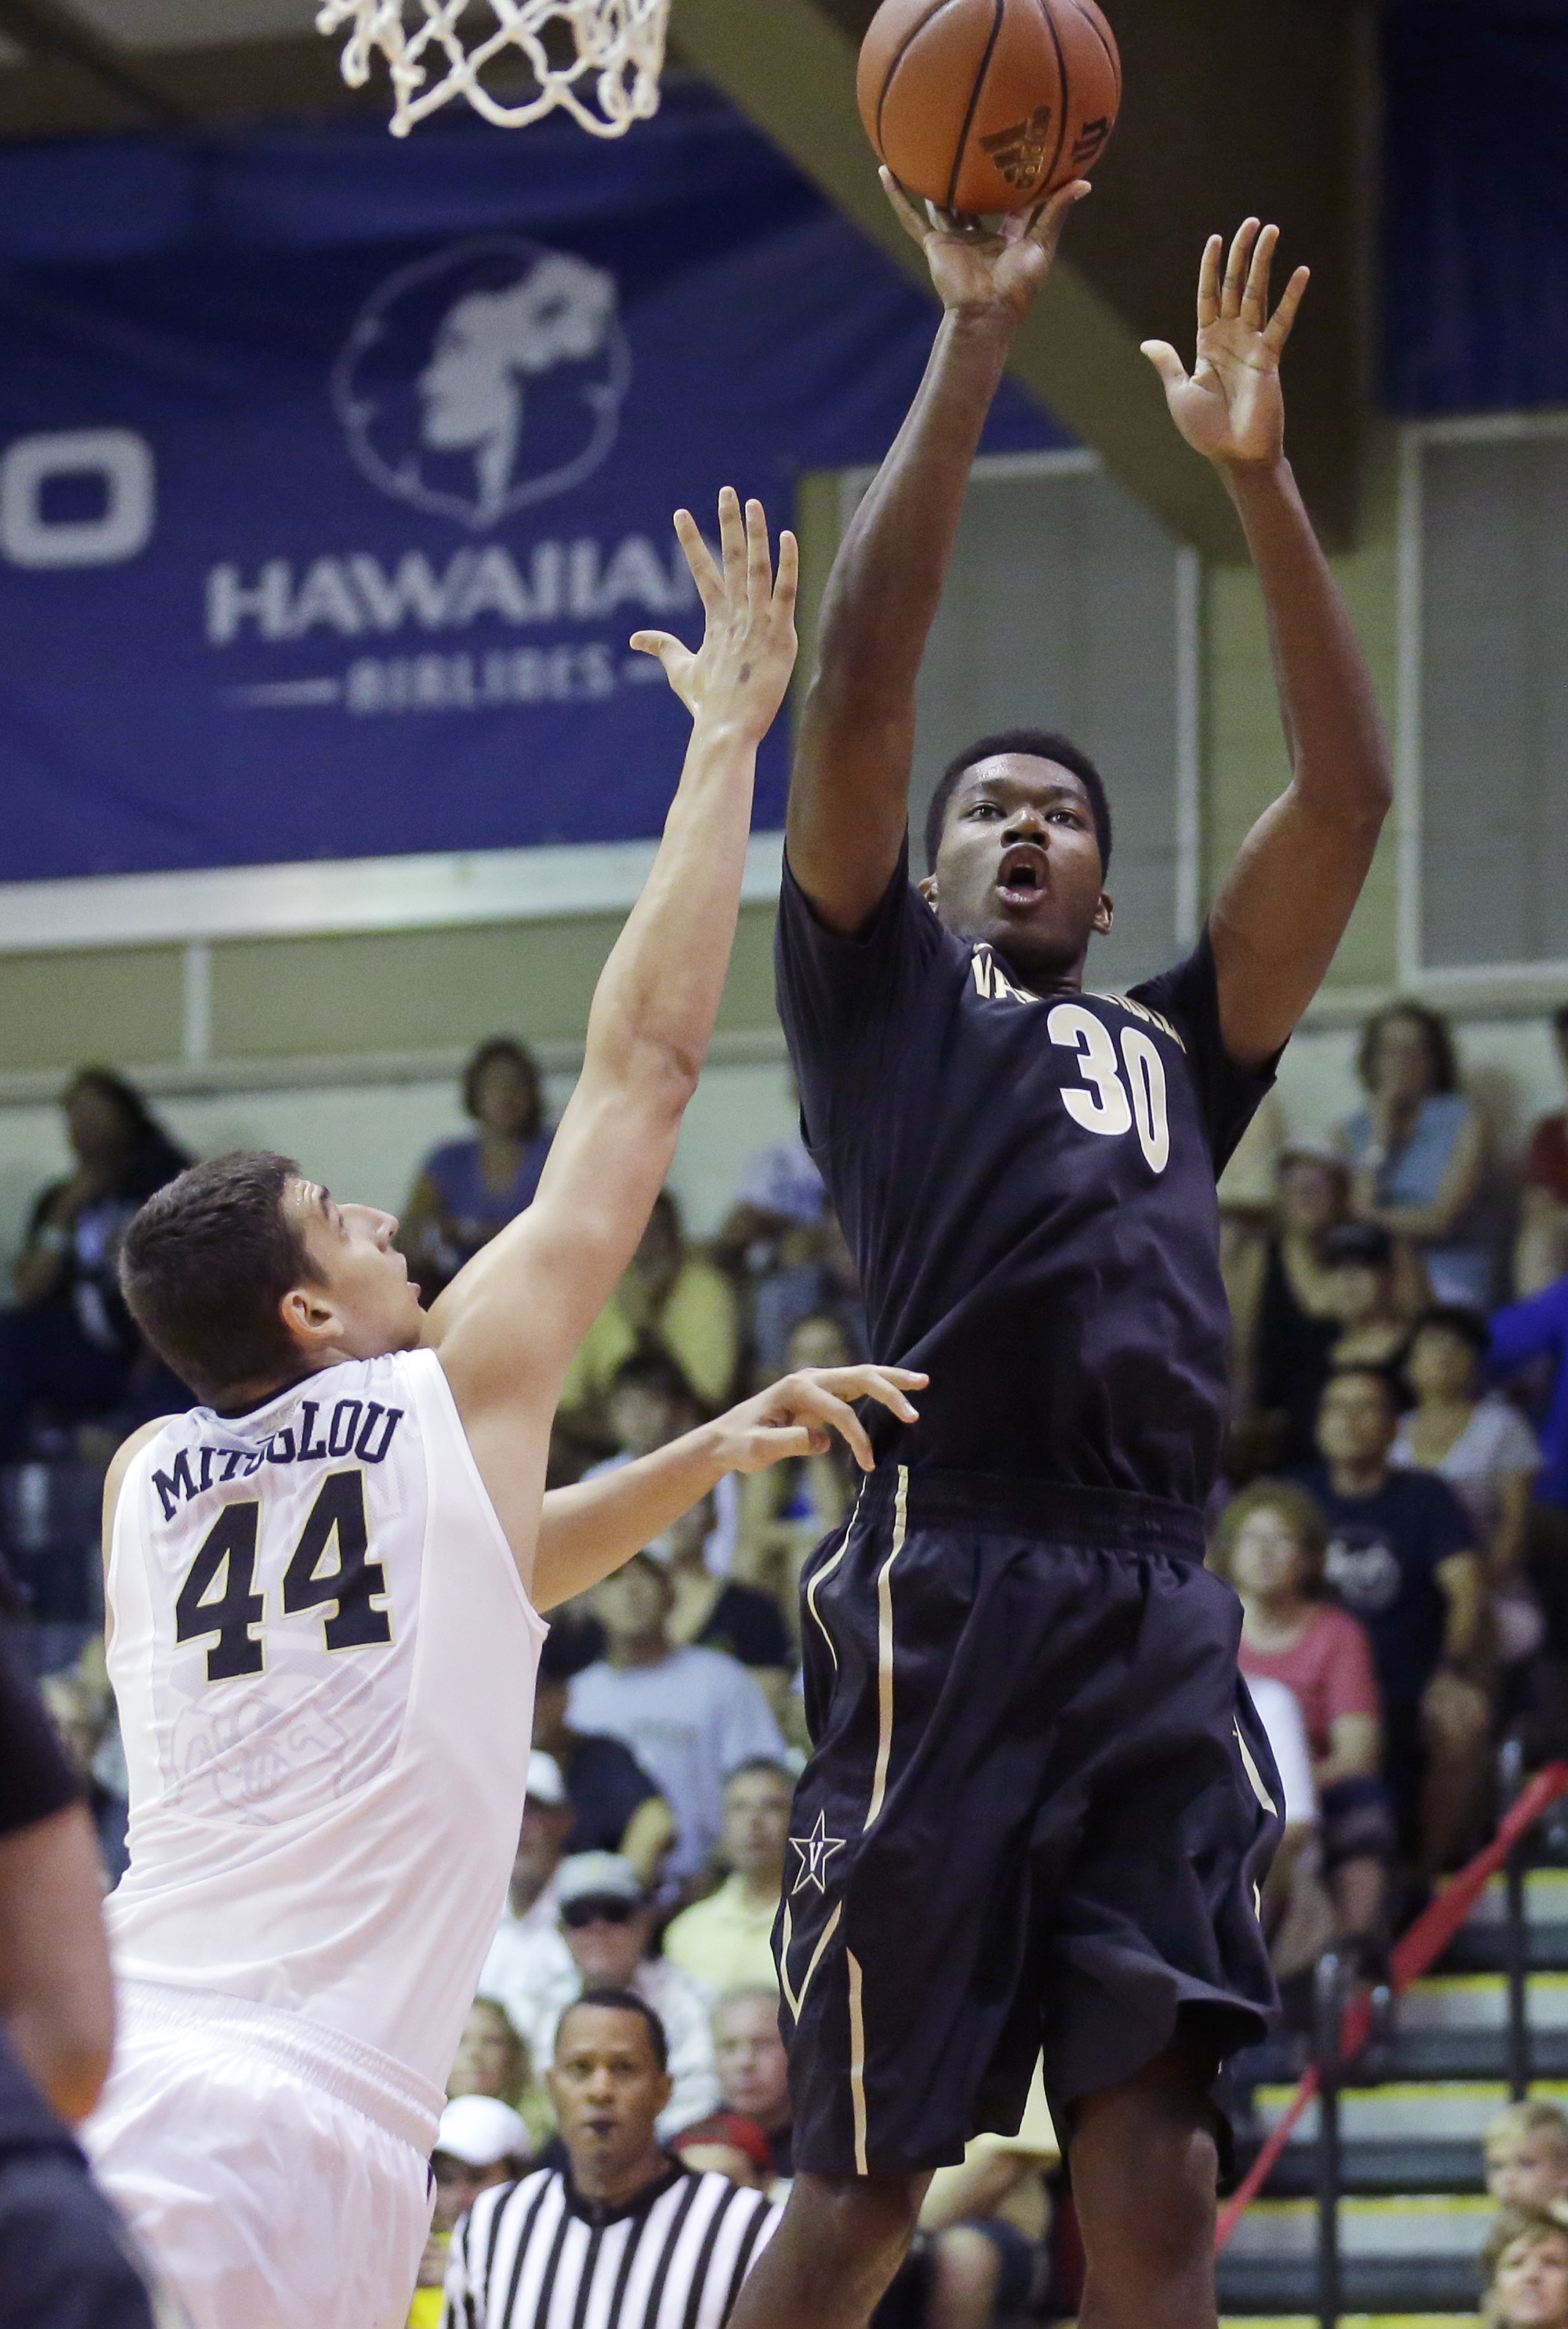 Vanderbilt center Damian Jones (30) shoots as Wake Forest forward Konstantinos Mitoglou (44) defends during the first half of an NCAA college basketball game in the second round of the Maui Invitational, Tuesday, Nov. 24, 2015, in Lahaina, Hawaii. (AP Pho